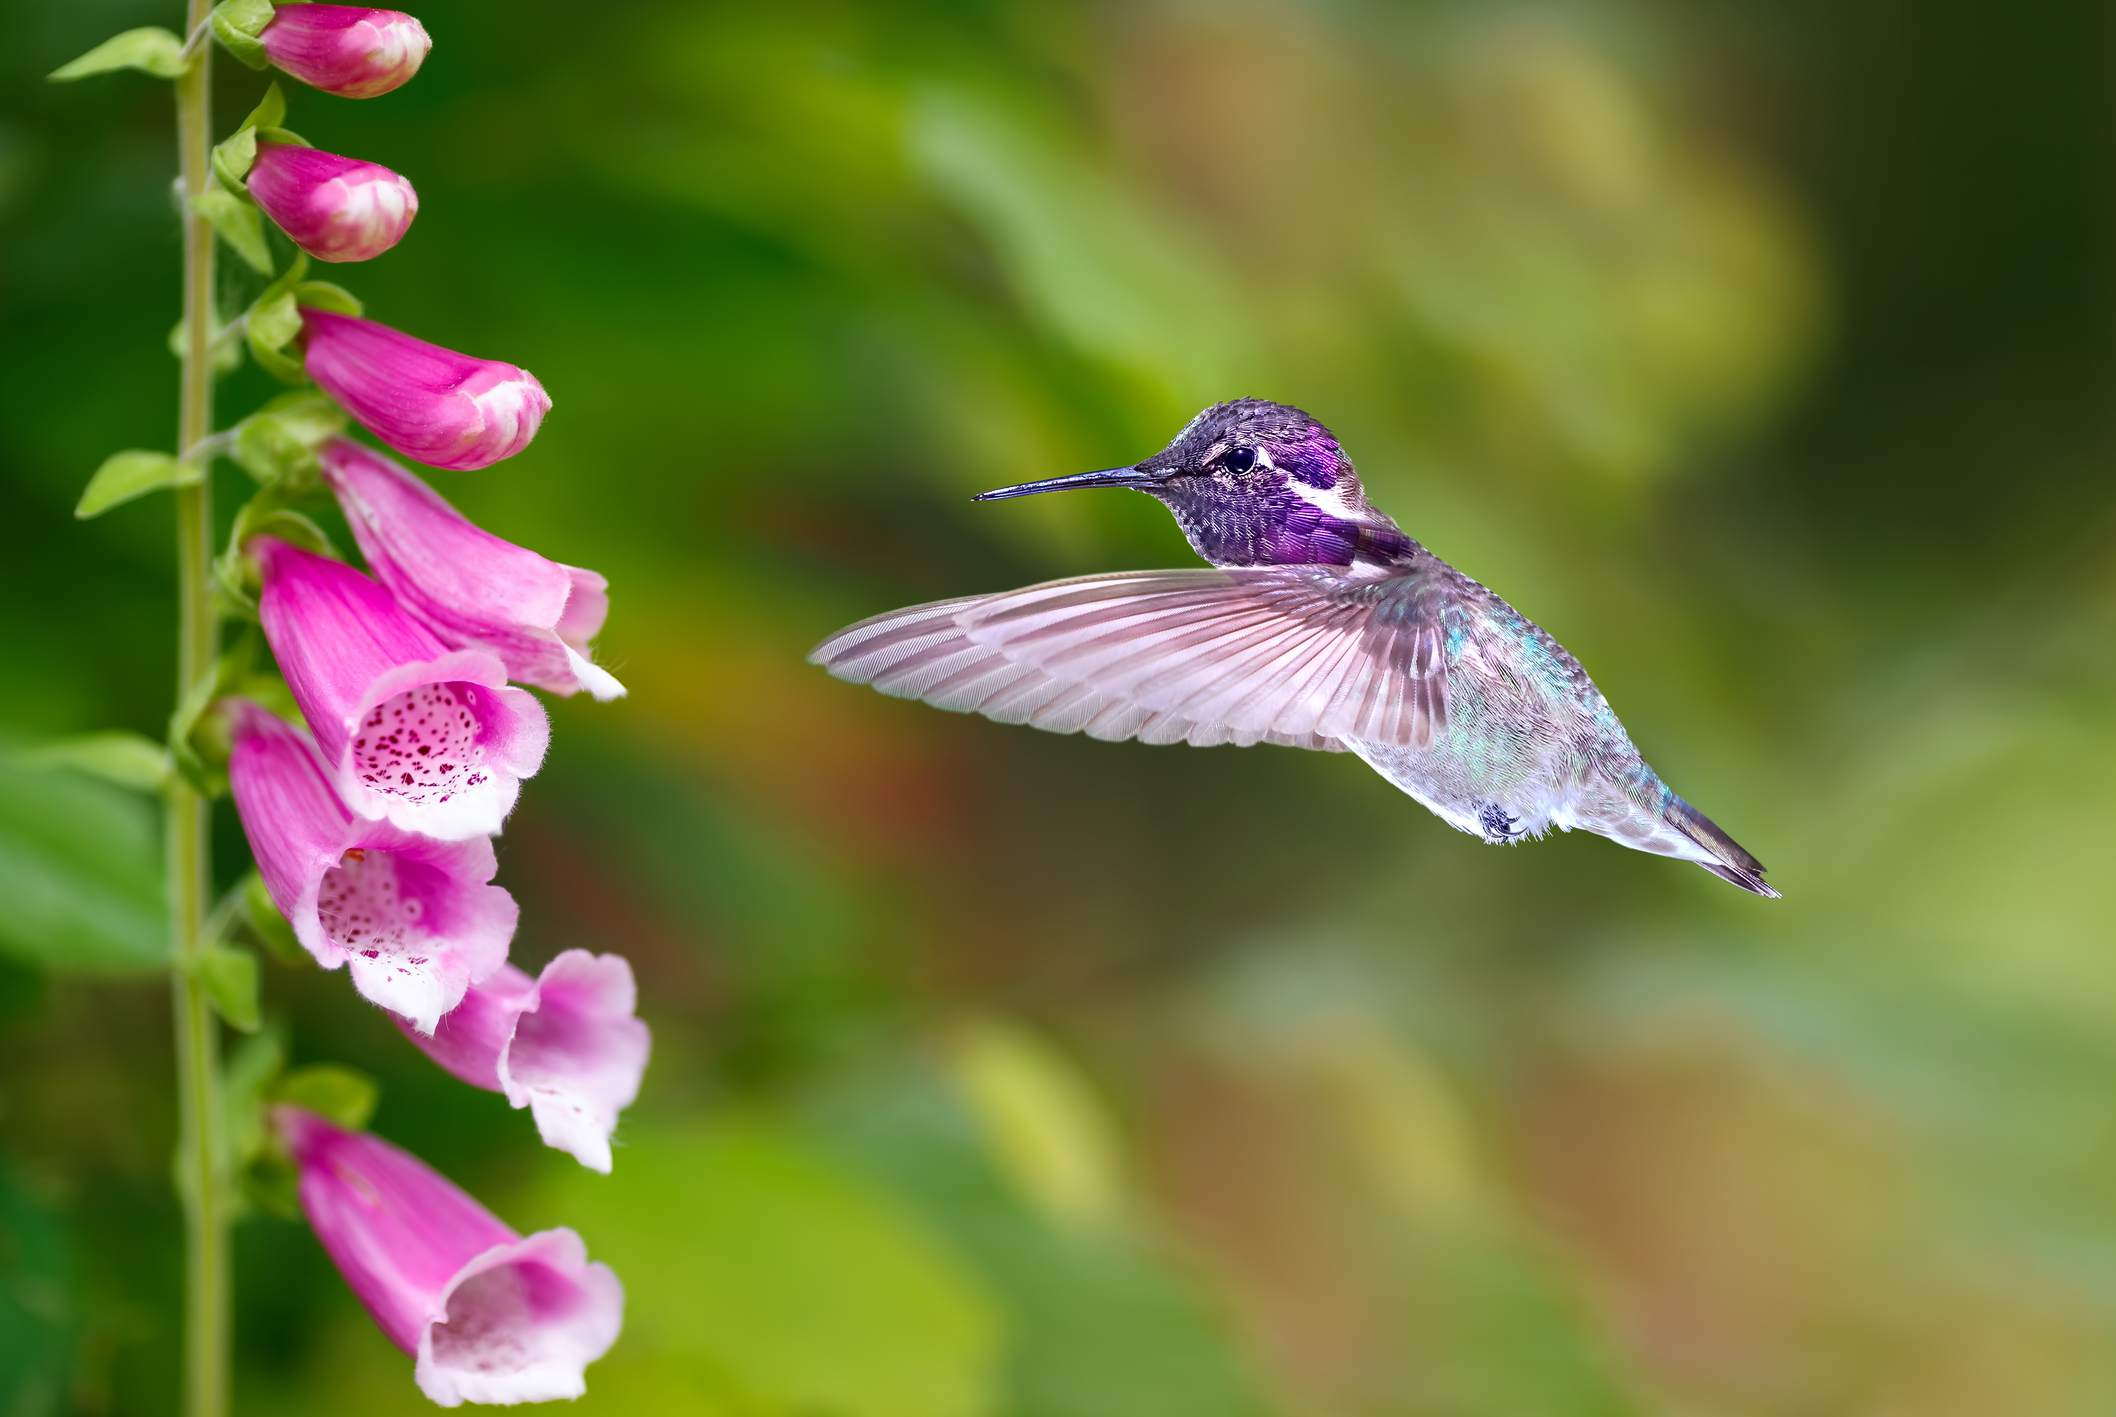 Pink foxglove plant approached by hummingbird.